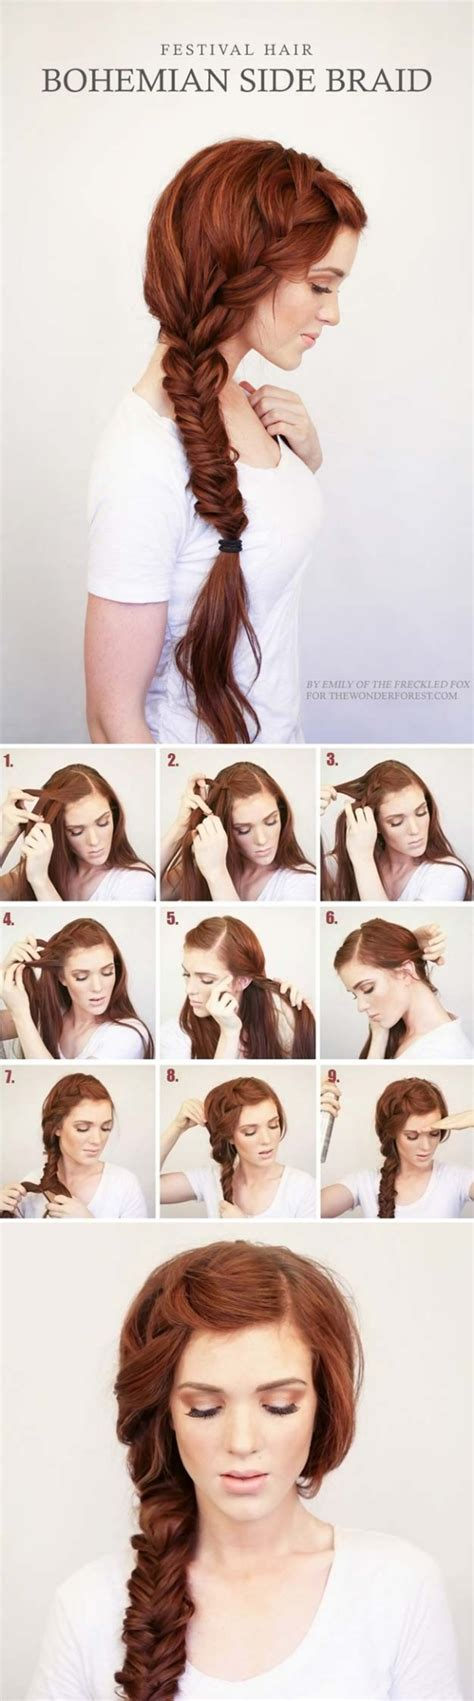 3 everyday hairstyles just in 3 minutes 30 hairstyles that can be done in 3 minutes page 3 of 4